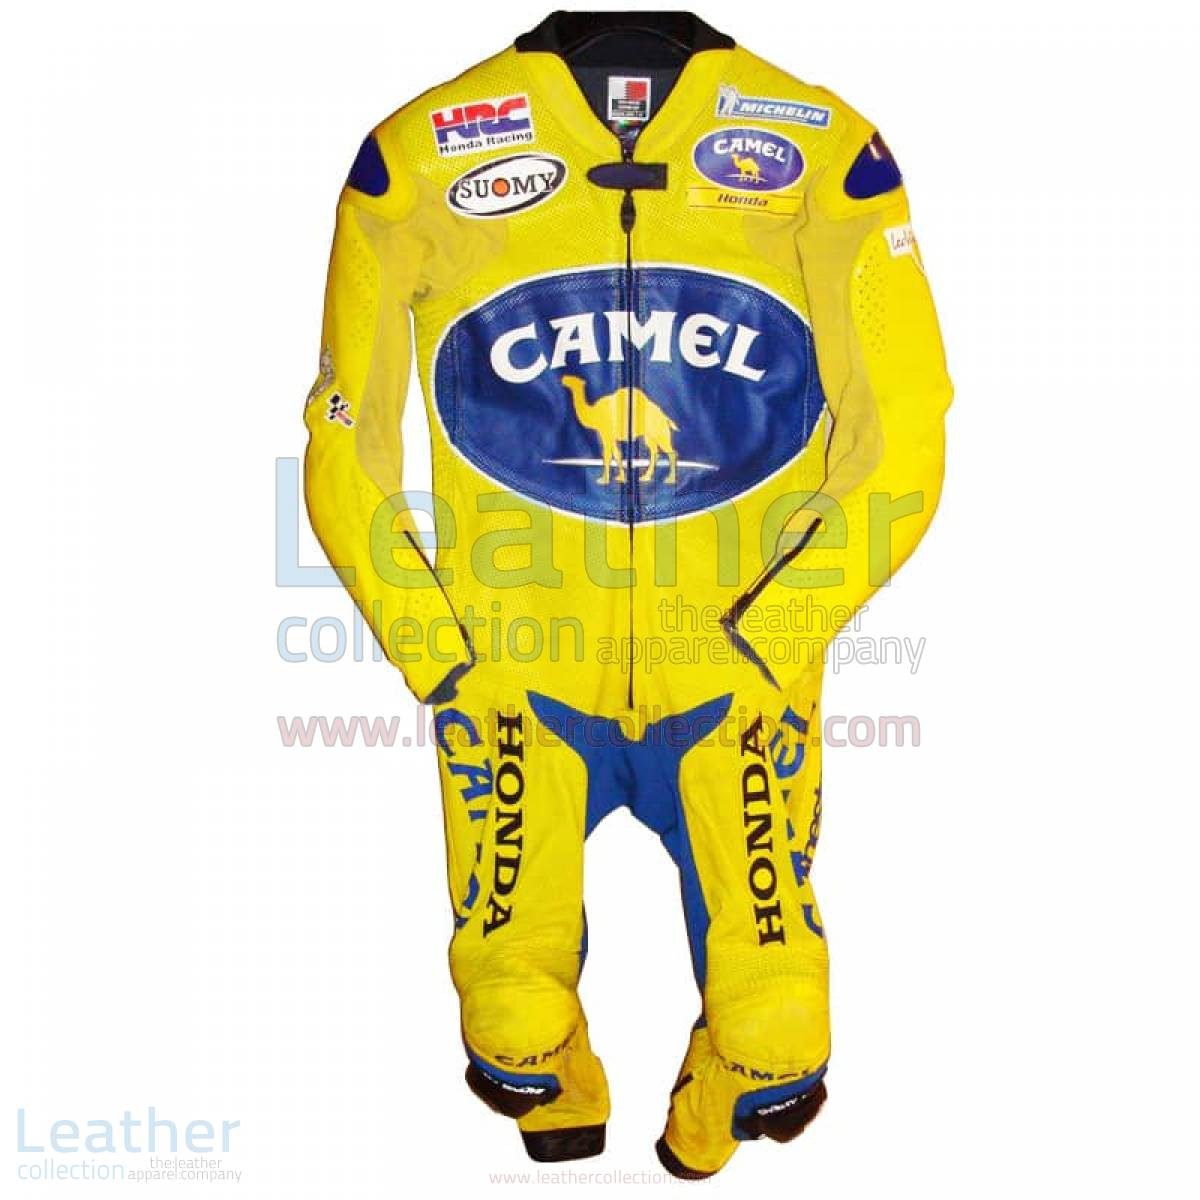 Troy Bayliss Camel Honda GP 2005 Leathers